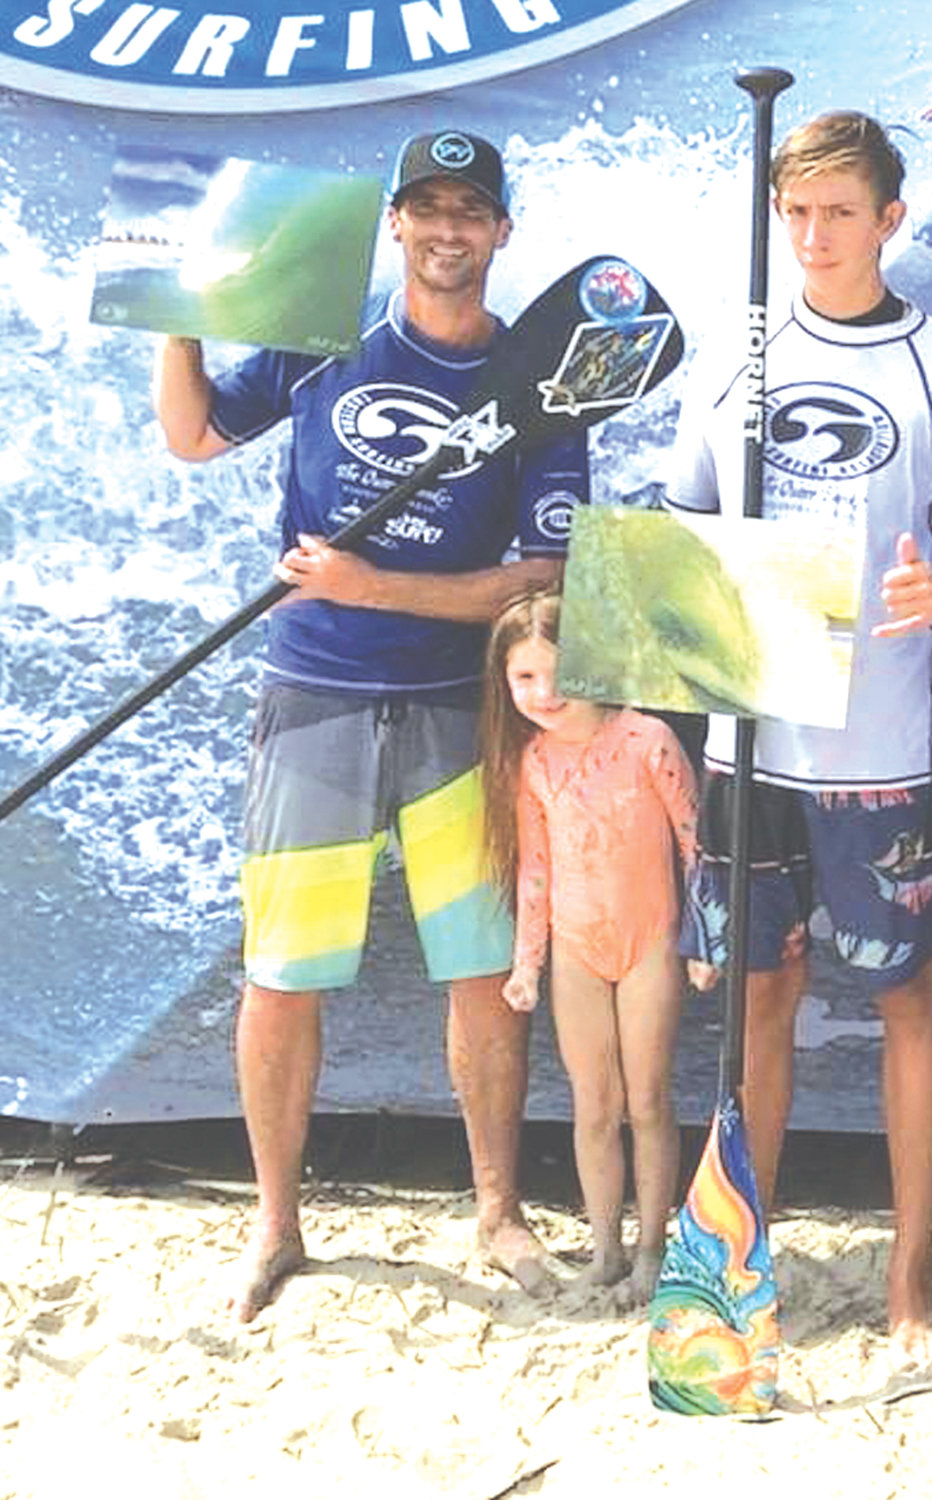 STRONG FINISH: Christopher Herbert at the Eastern Surfing Championships in North Carolina.